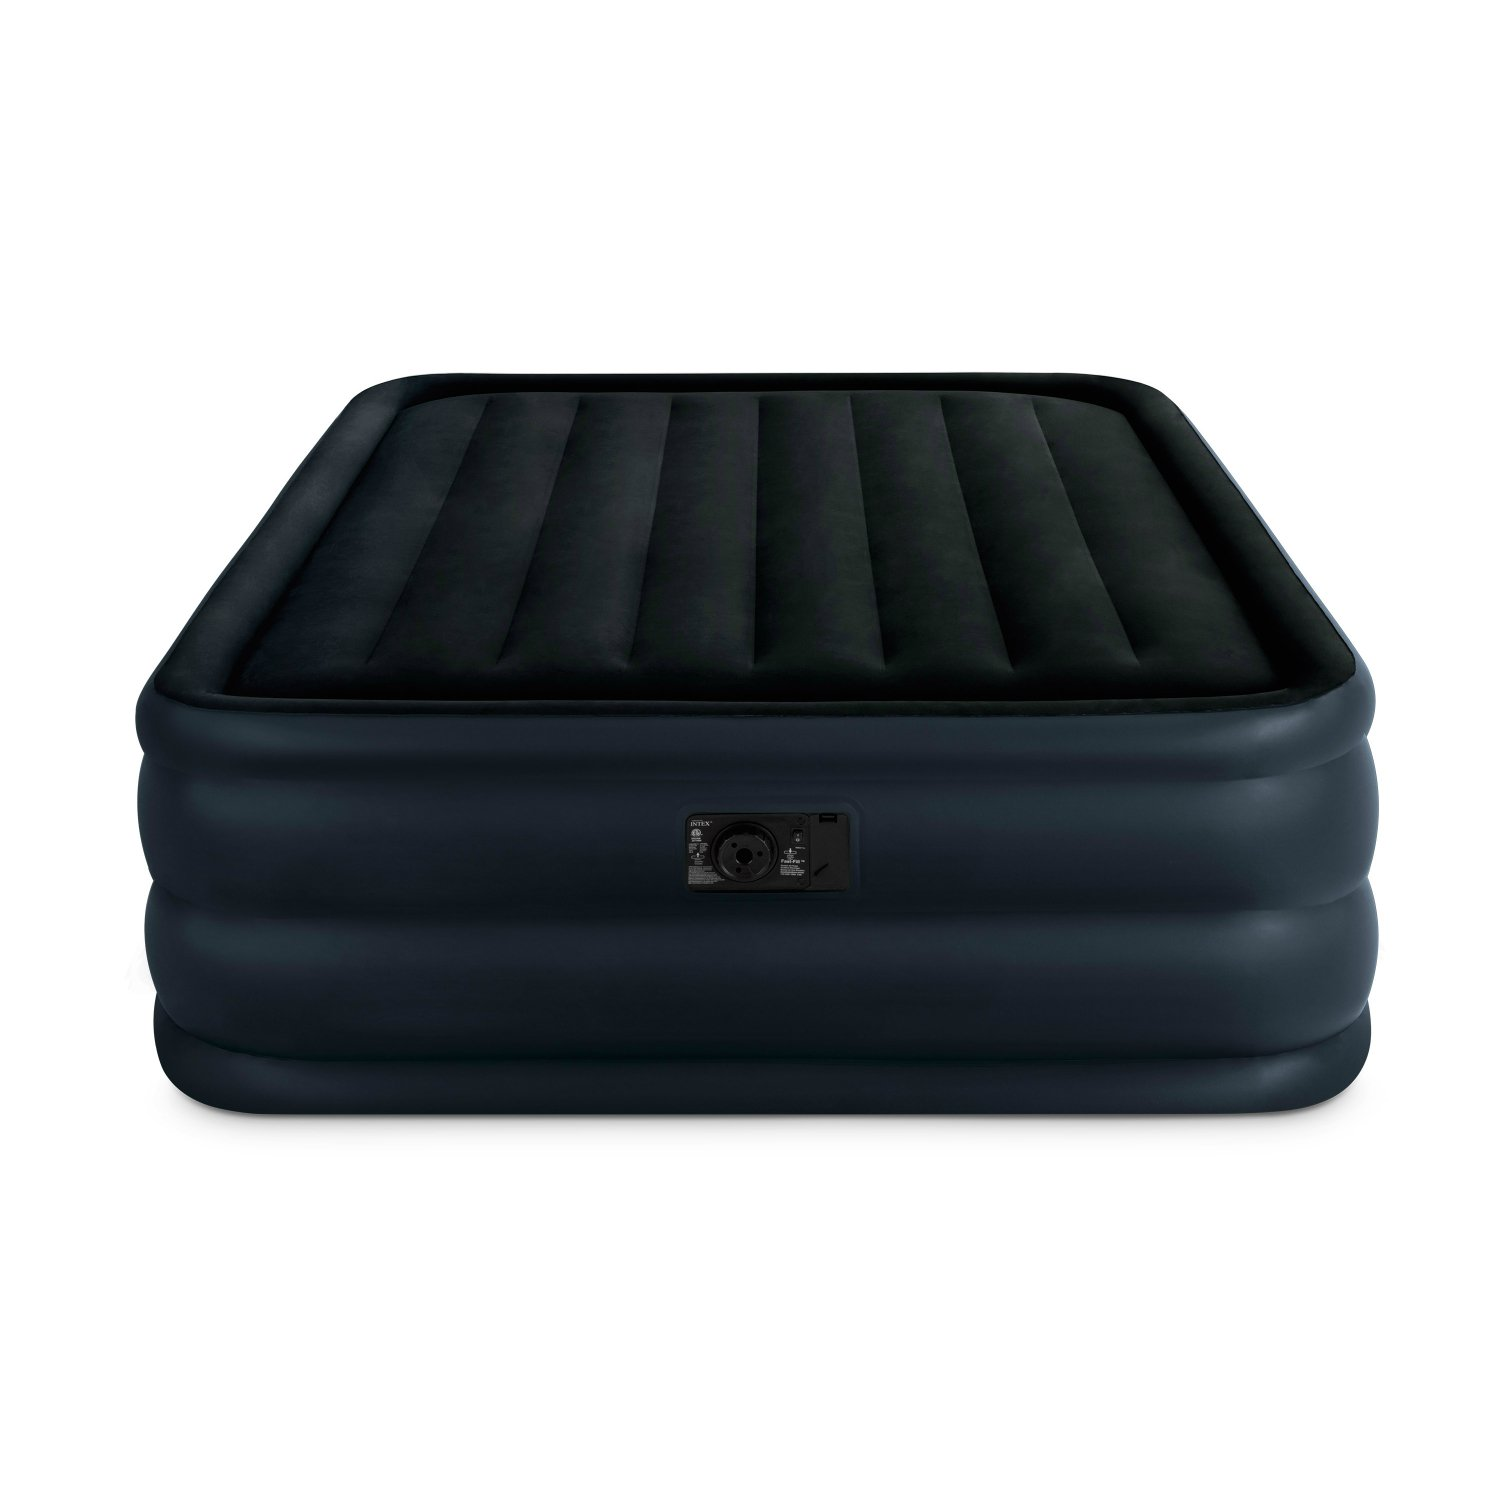 Intex Raised Downy Airbed topratedhomeproducts